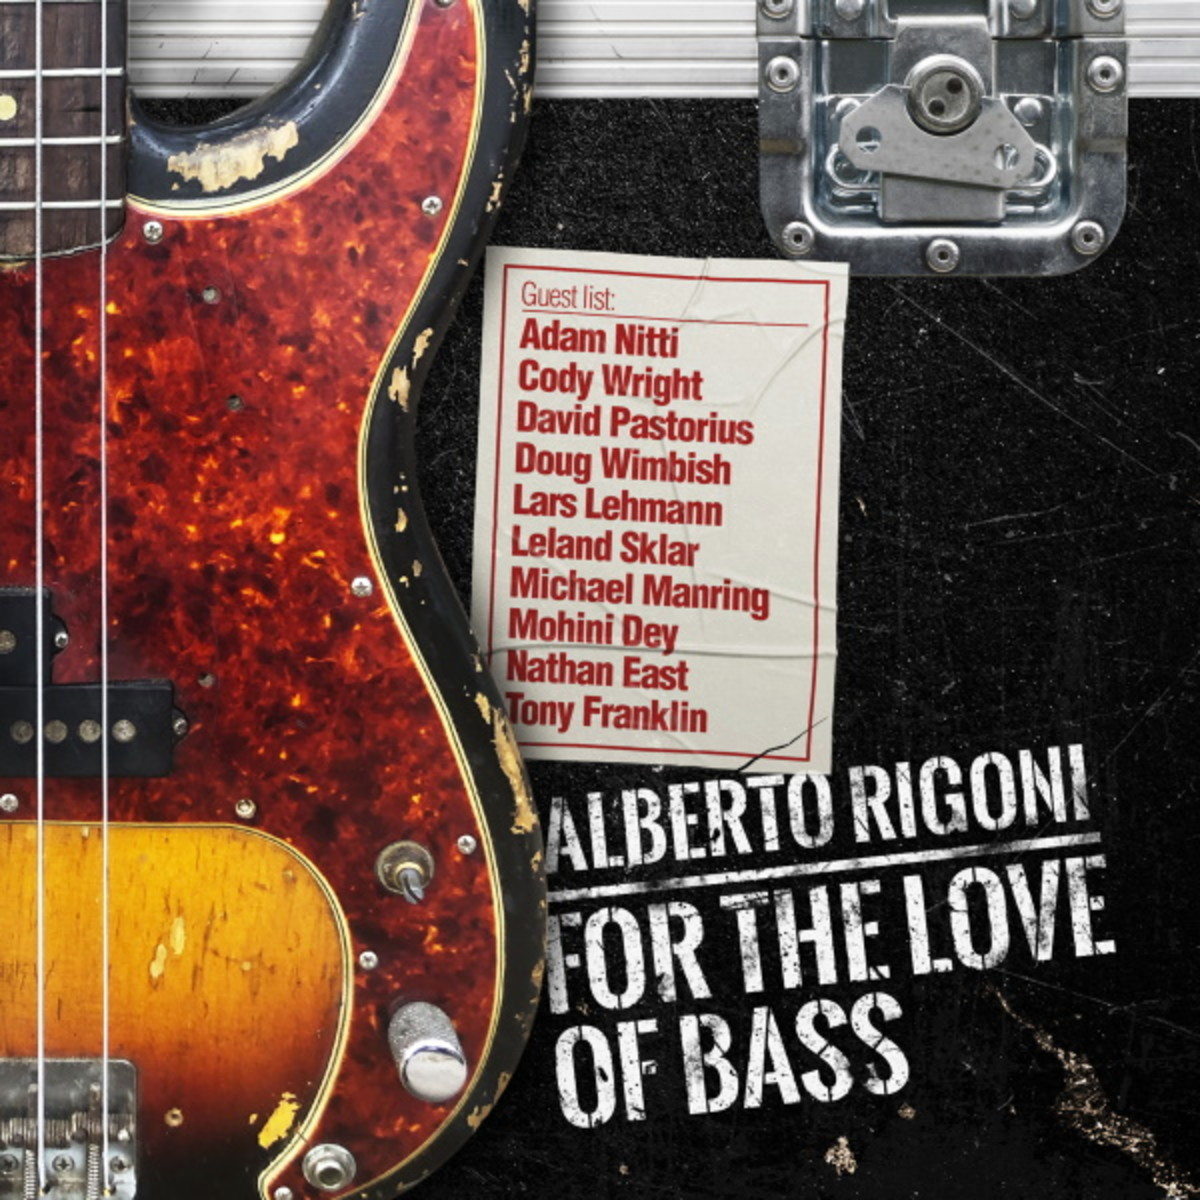 Alberto Rigoni - For the Love of Bass med res